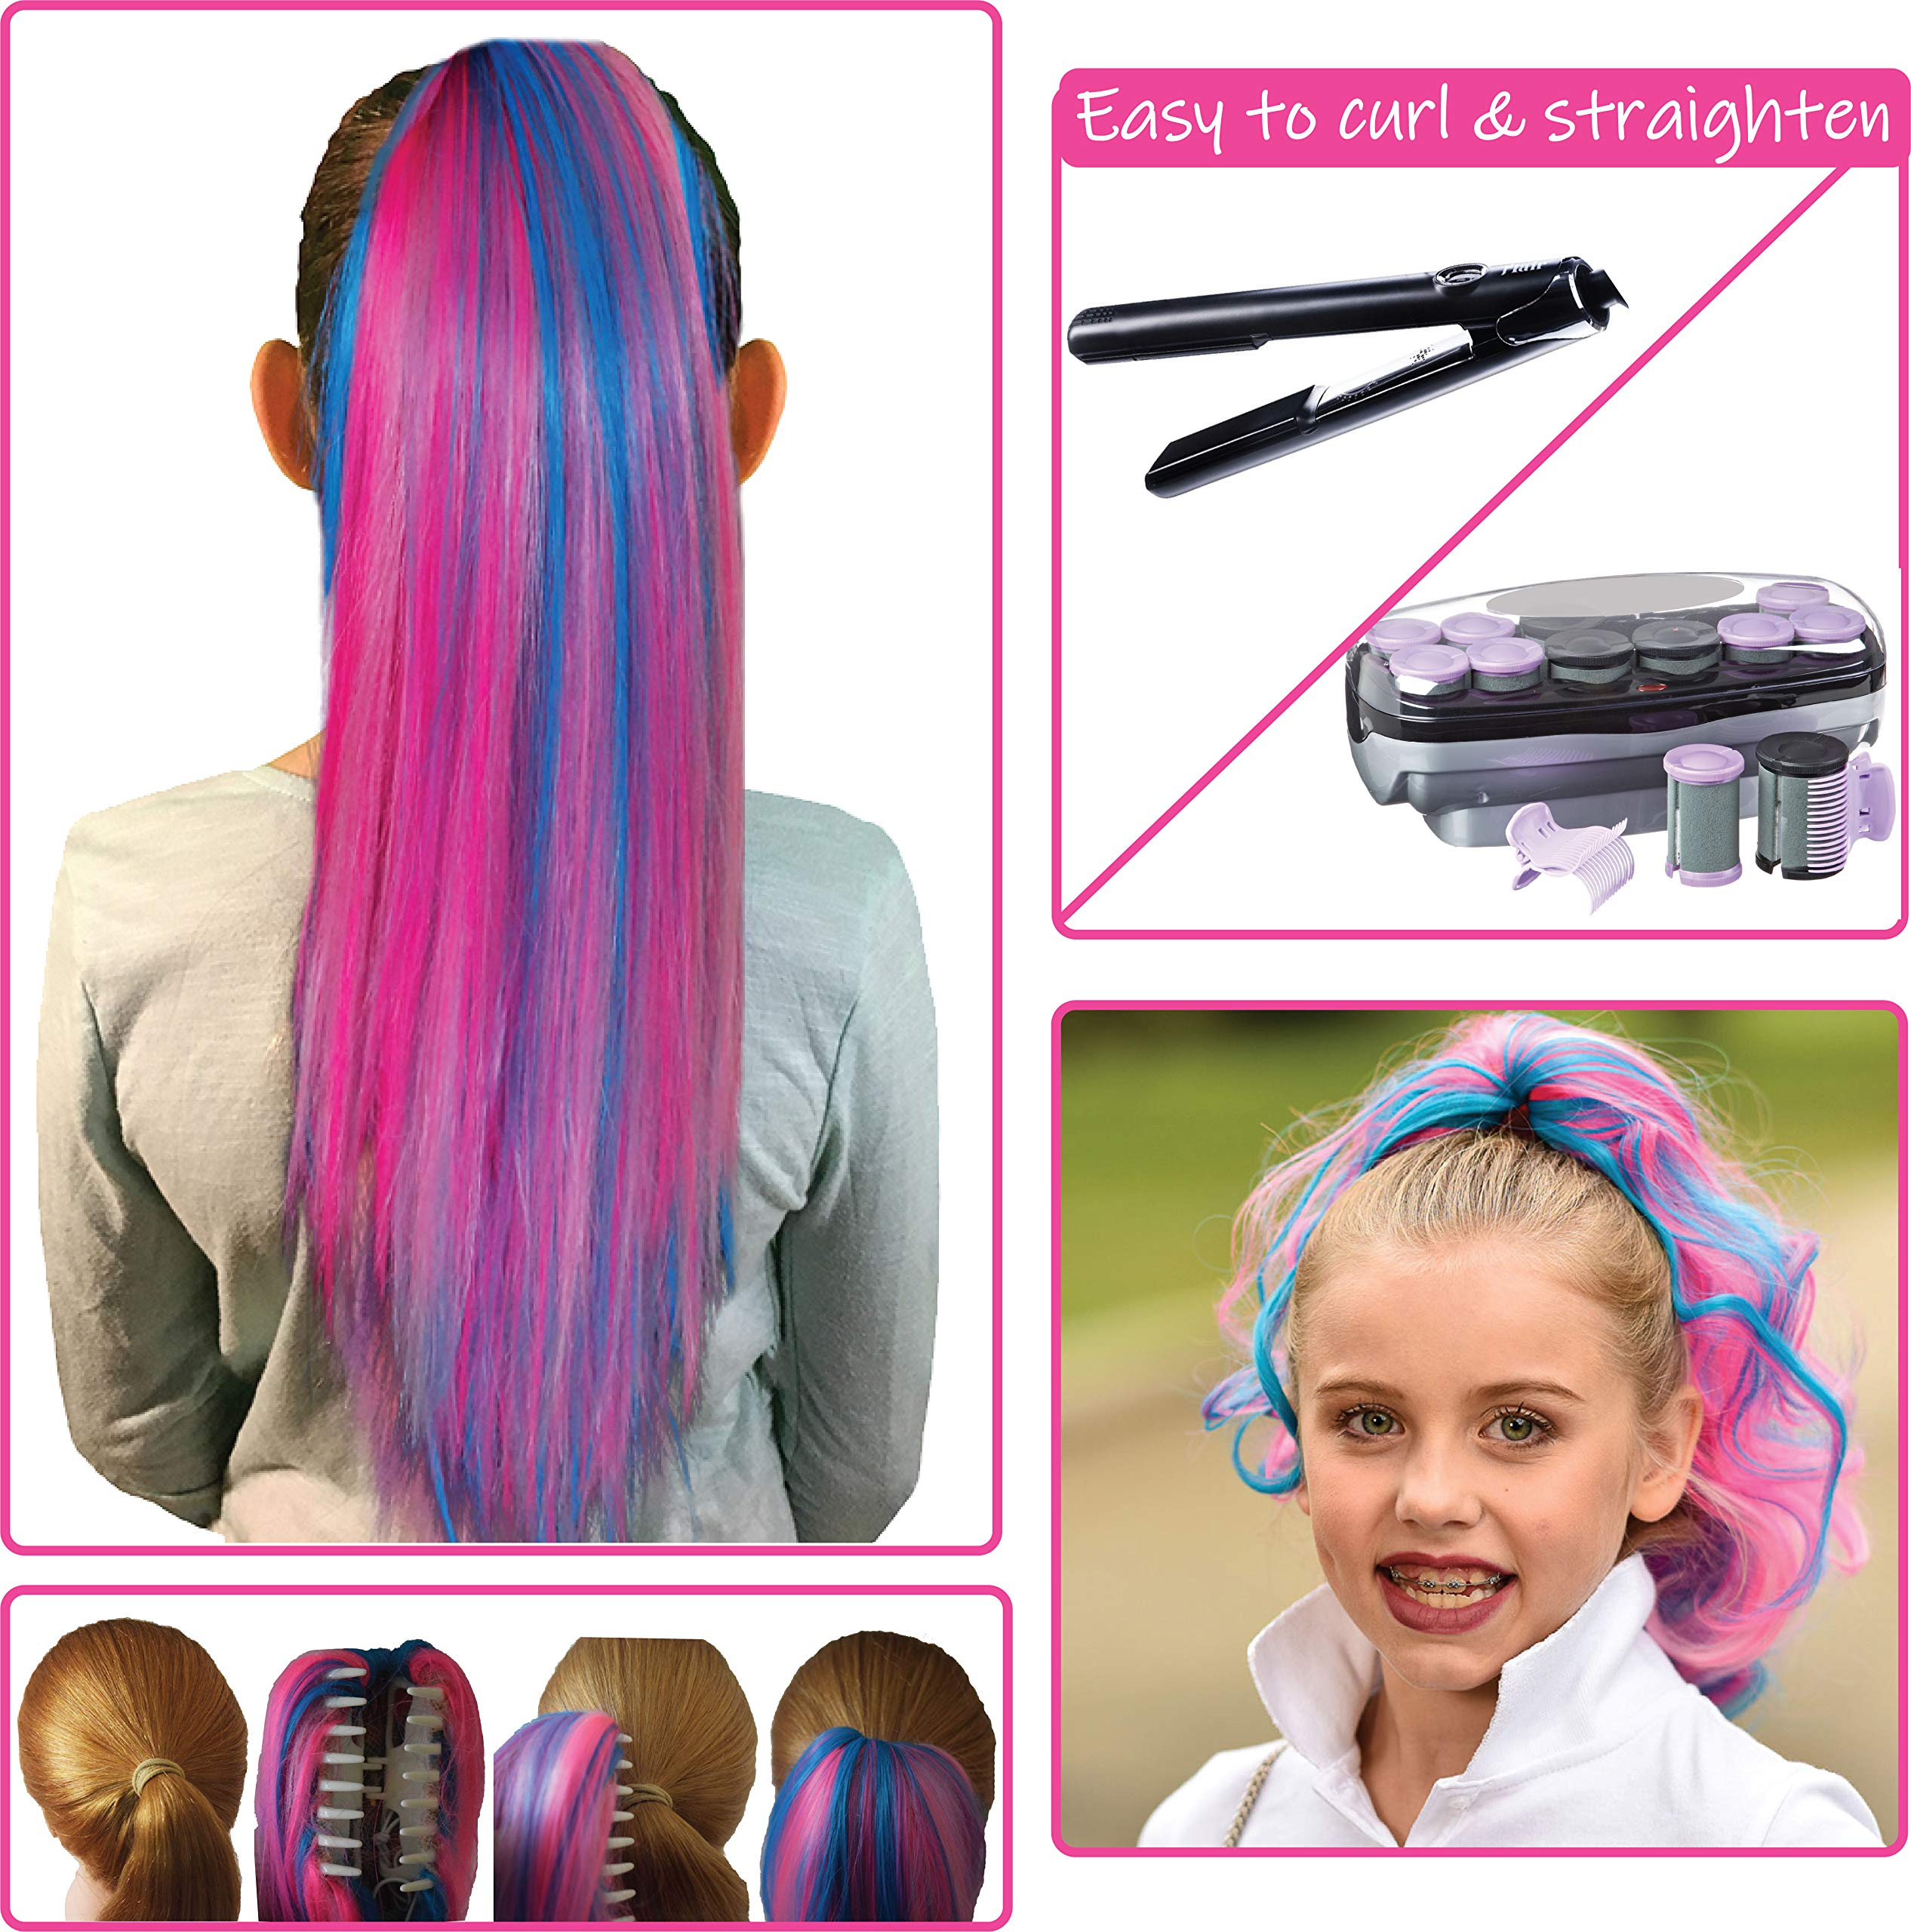 Pink Color Hair Extensions for Kids - Temporary & Not Messy like Hair Chalk - Great Birthday Gift for Kids 4-12, Girls & Teens (18''-20'' Ponytail, Cotton Candy) by My Hair Popz